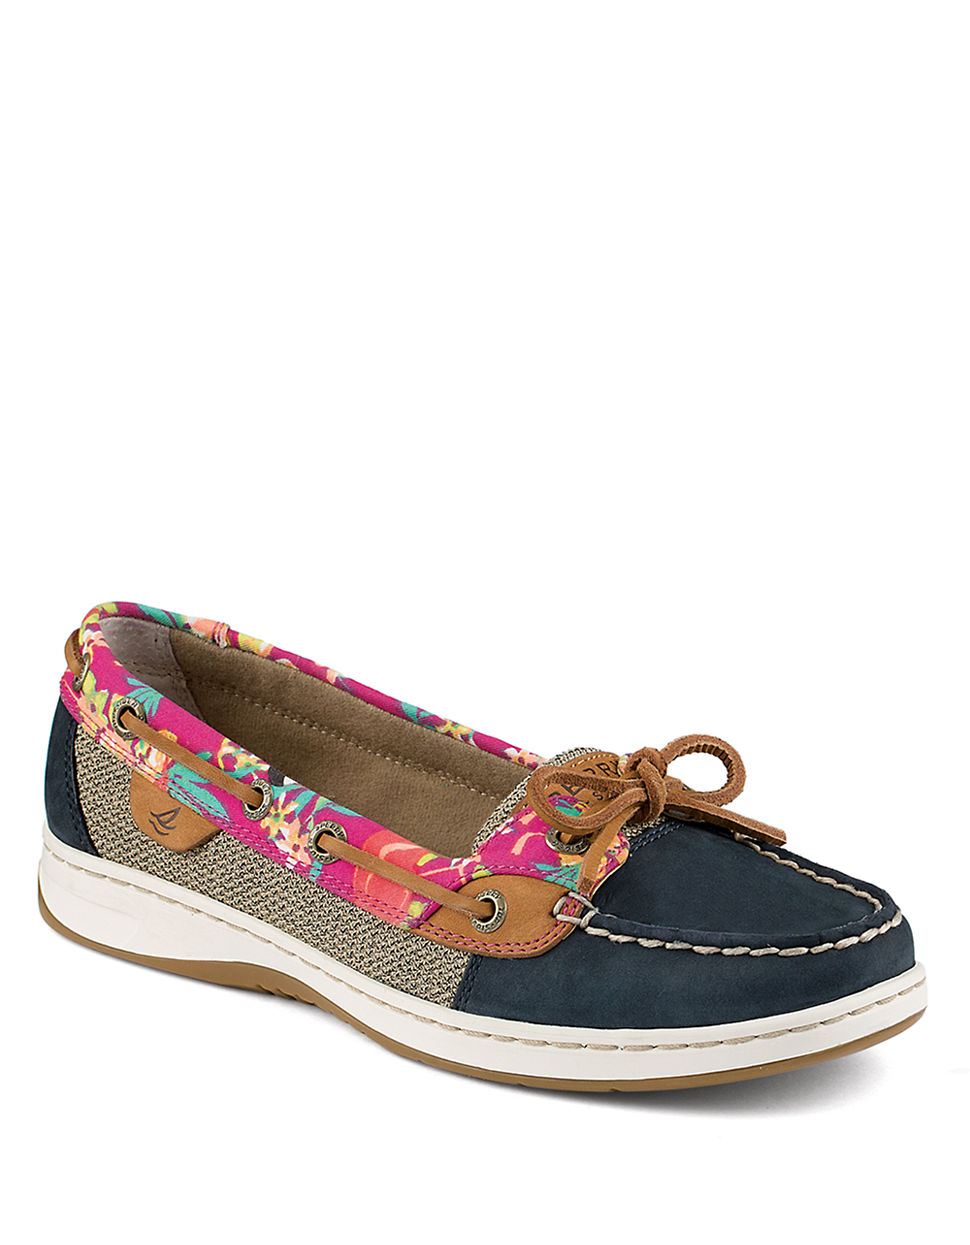 Sperry top sider angel fish 2 eye boat shoes in blue lyst for Best boat shoes for fishing